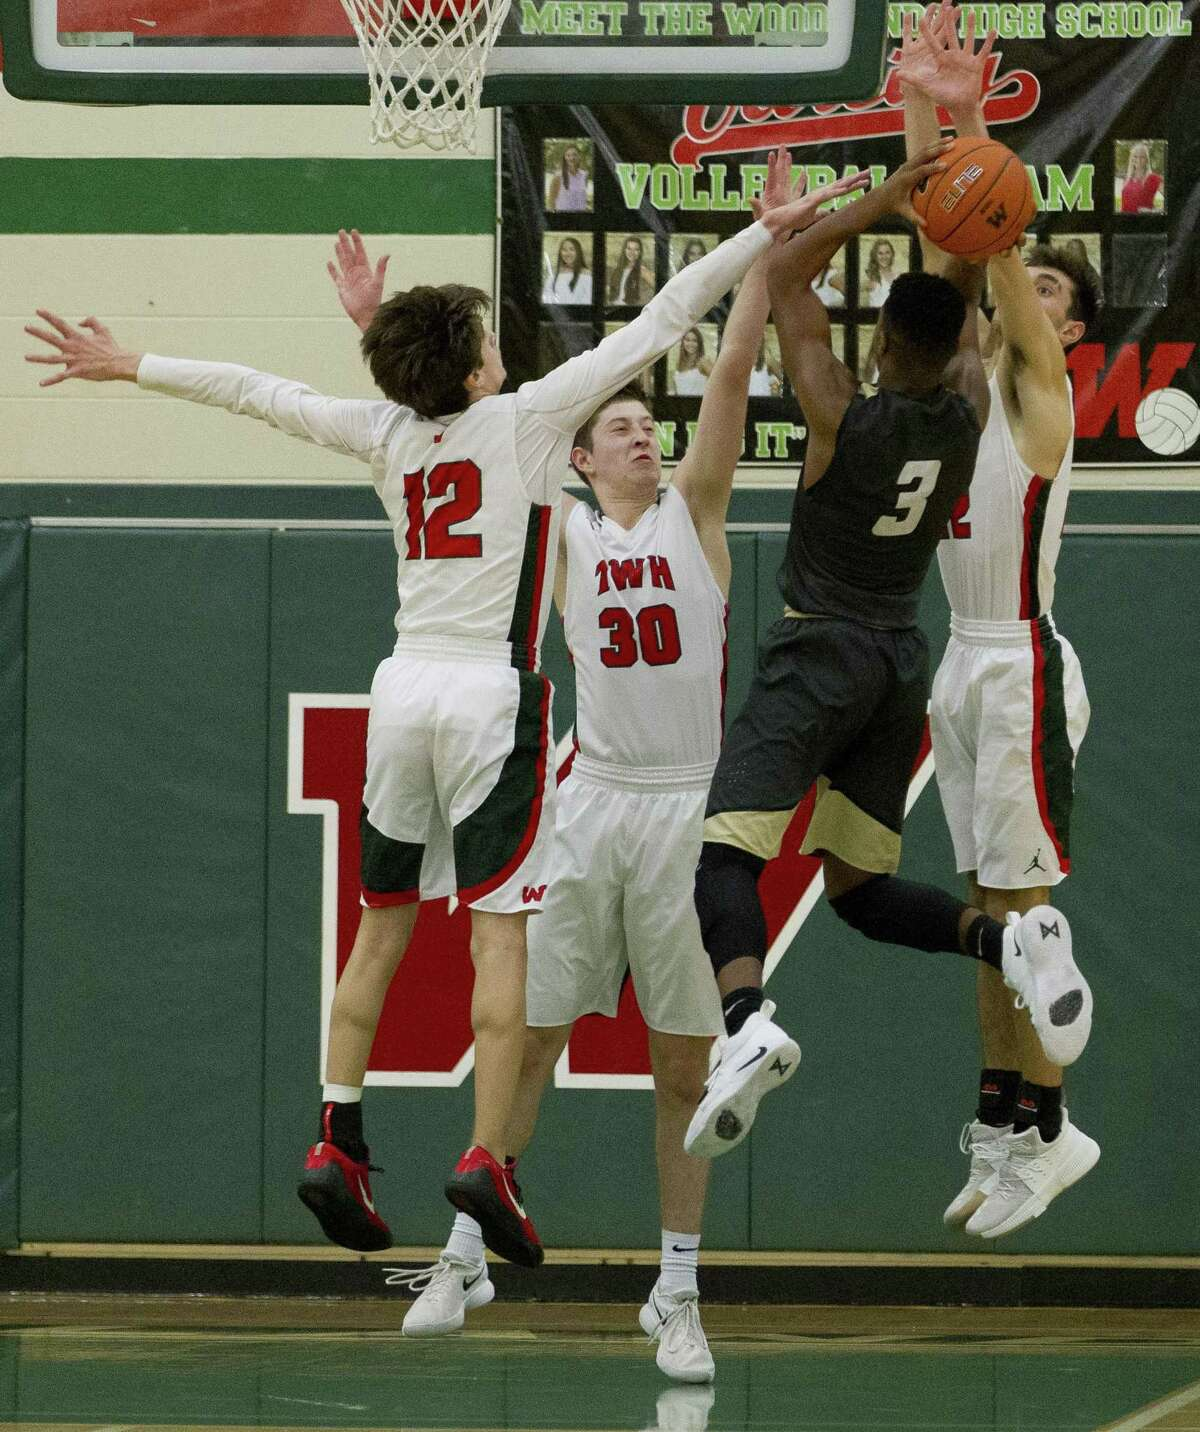 The Woodlands point guard Charlie Zorn (12), small forward Patrick Oed (30) and small forward Caleb Smith (22) contest a shot by Conroe guard Michael Phoenix (3) during the fourth quarter of a District 15-6A high school boys basketball game at The Woodlands High School, Monday, Dec. 17, 2018, in The Woodlands.